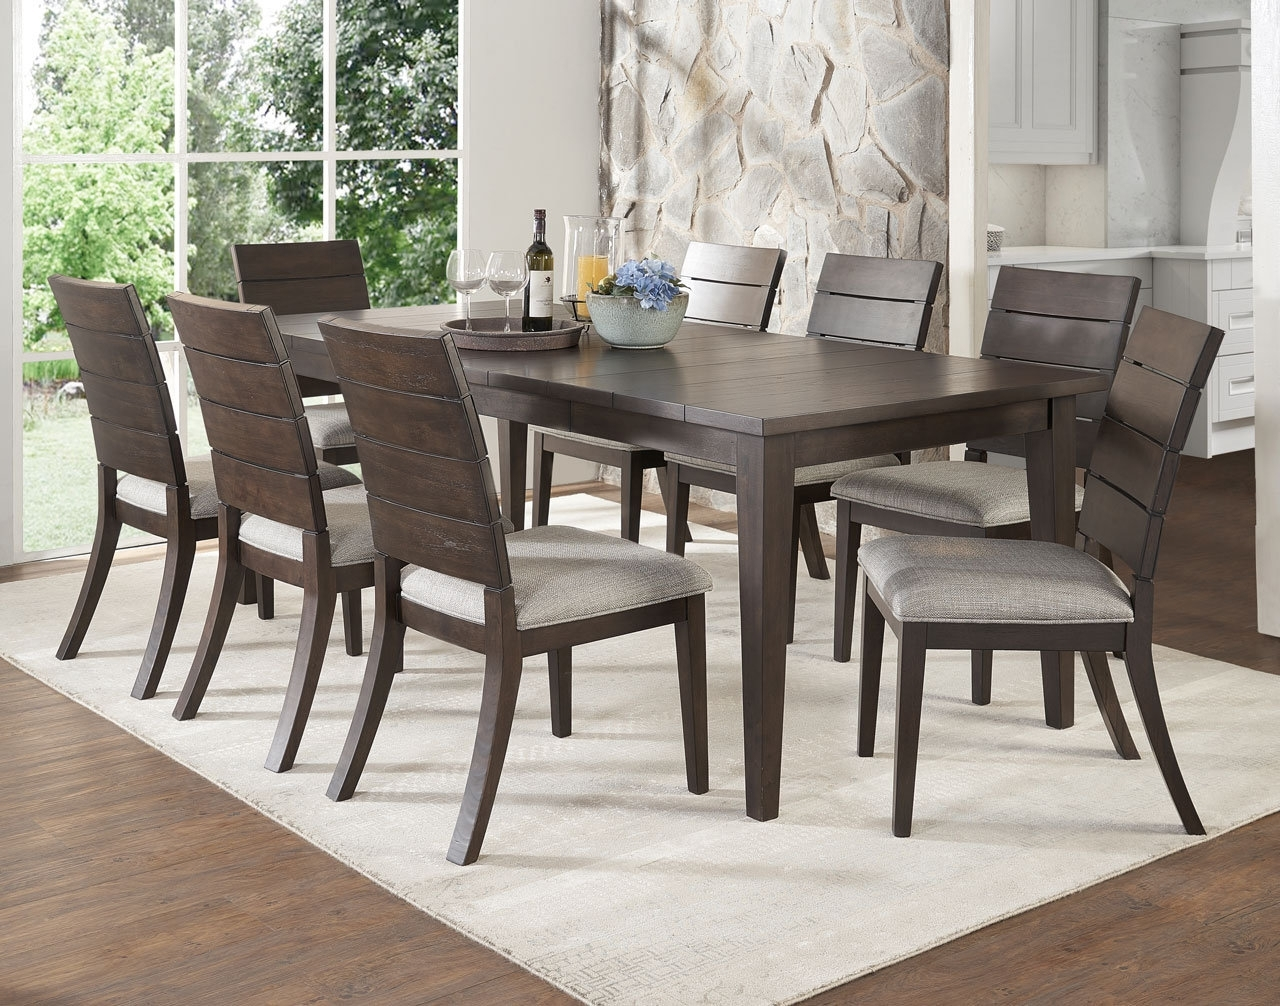 Wayfair With Regard To 2017 Extendable Dining Table Sets (View 22 of 25)